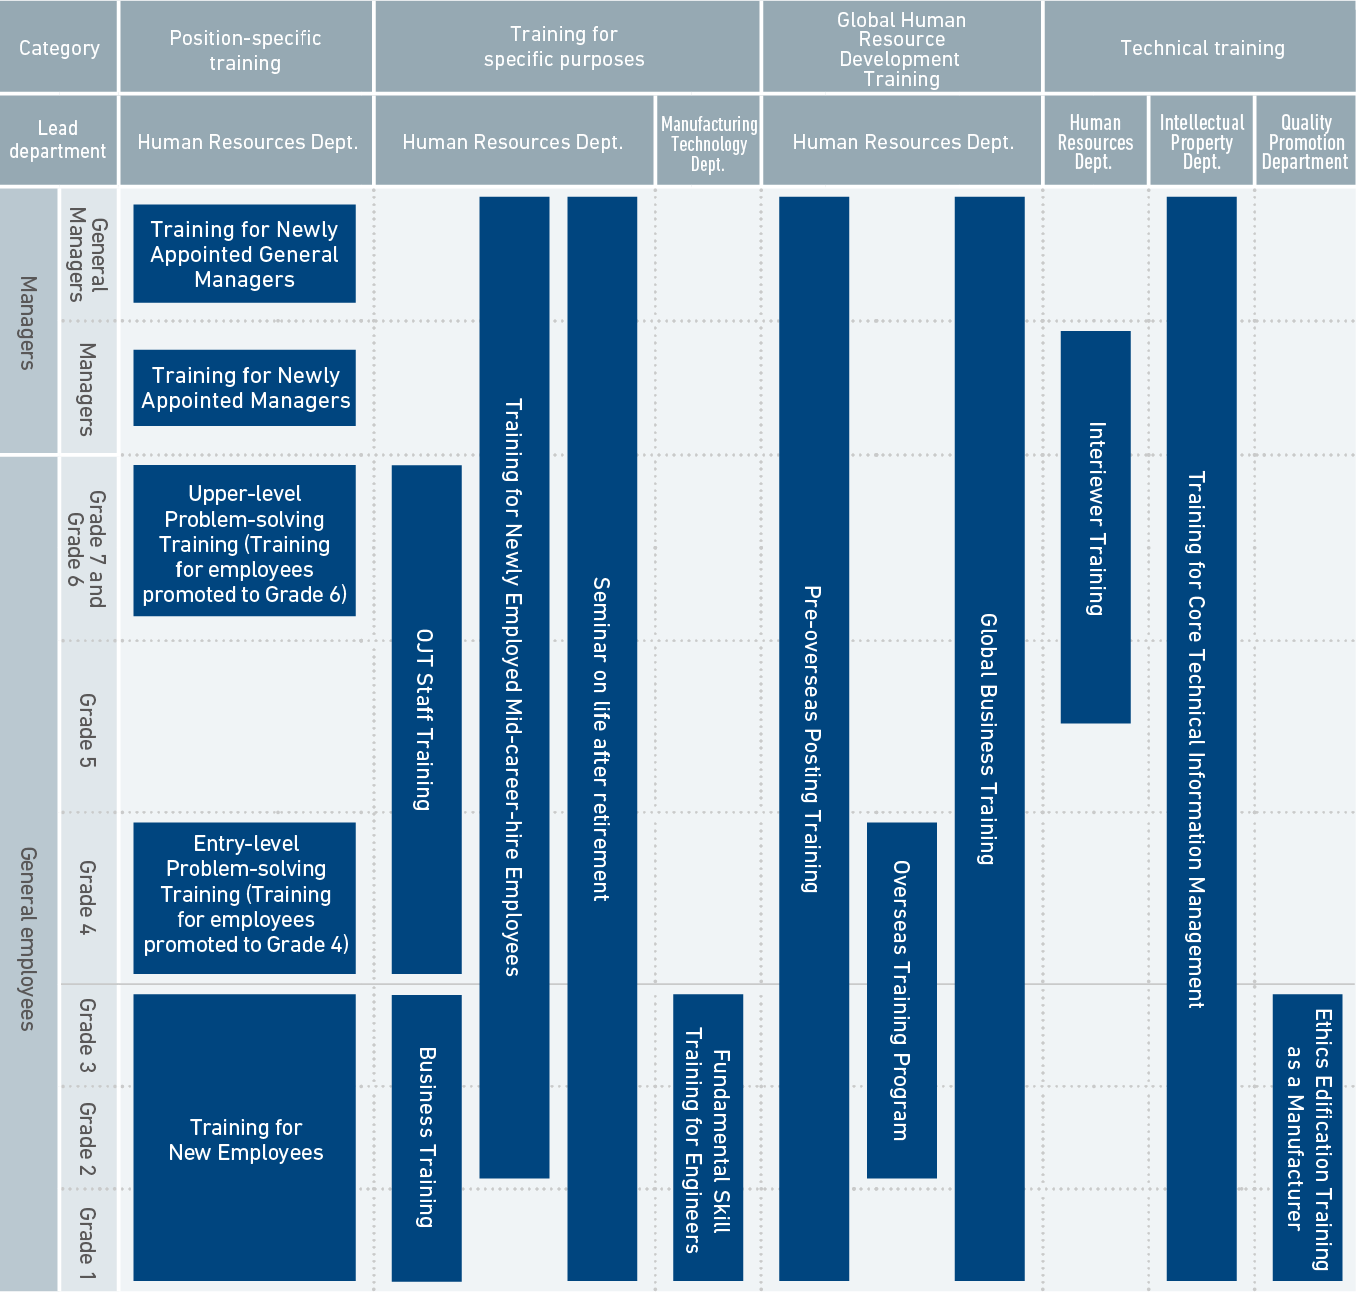 FY2015 Education Scheme (as of May 2017)